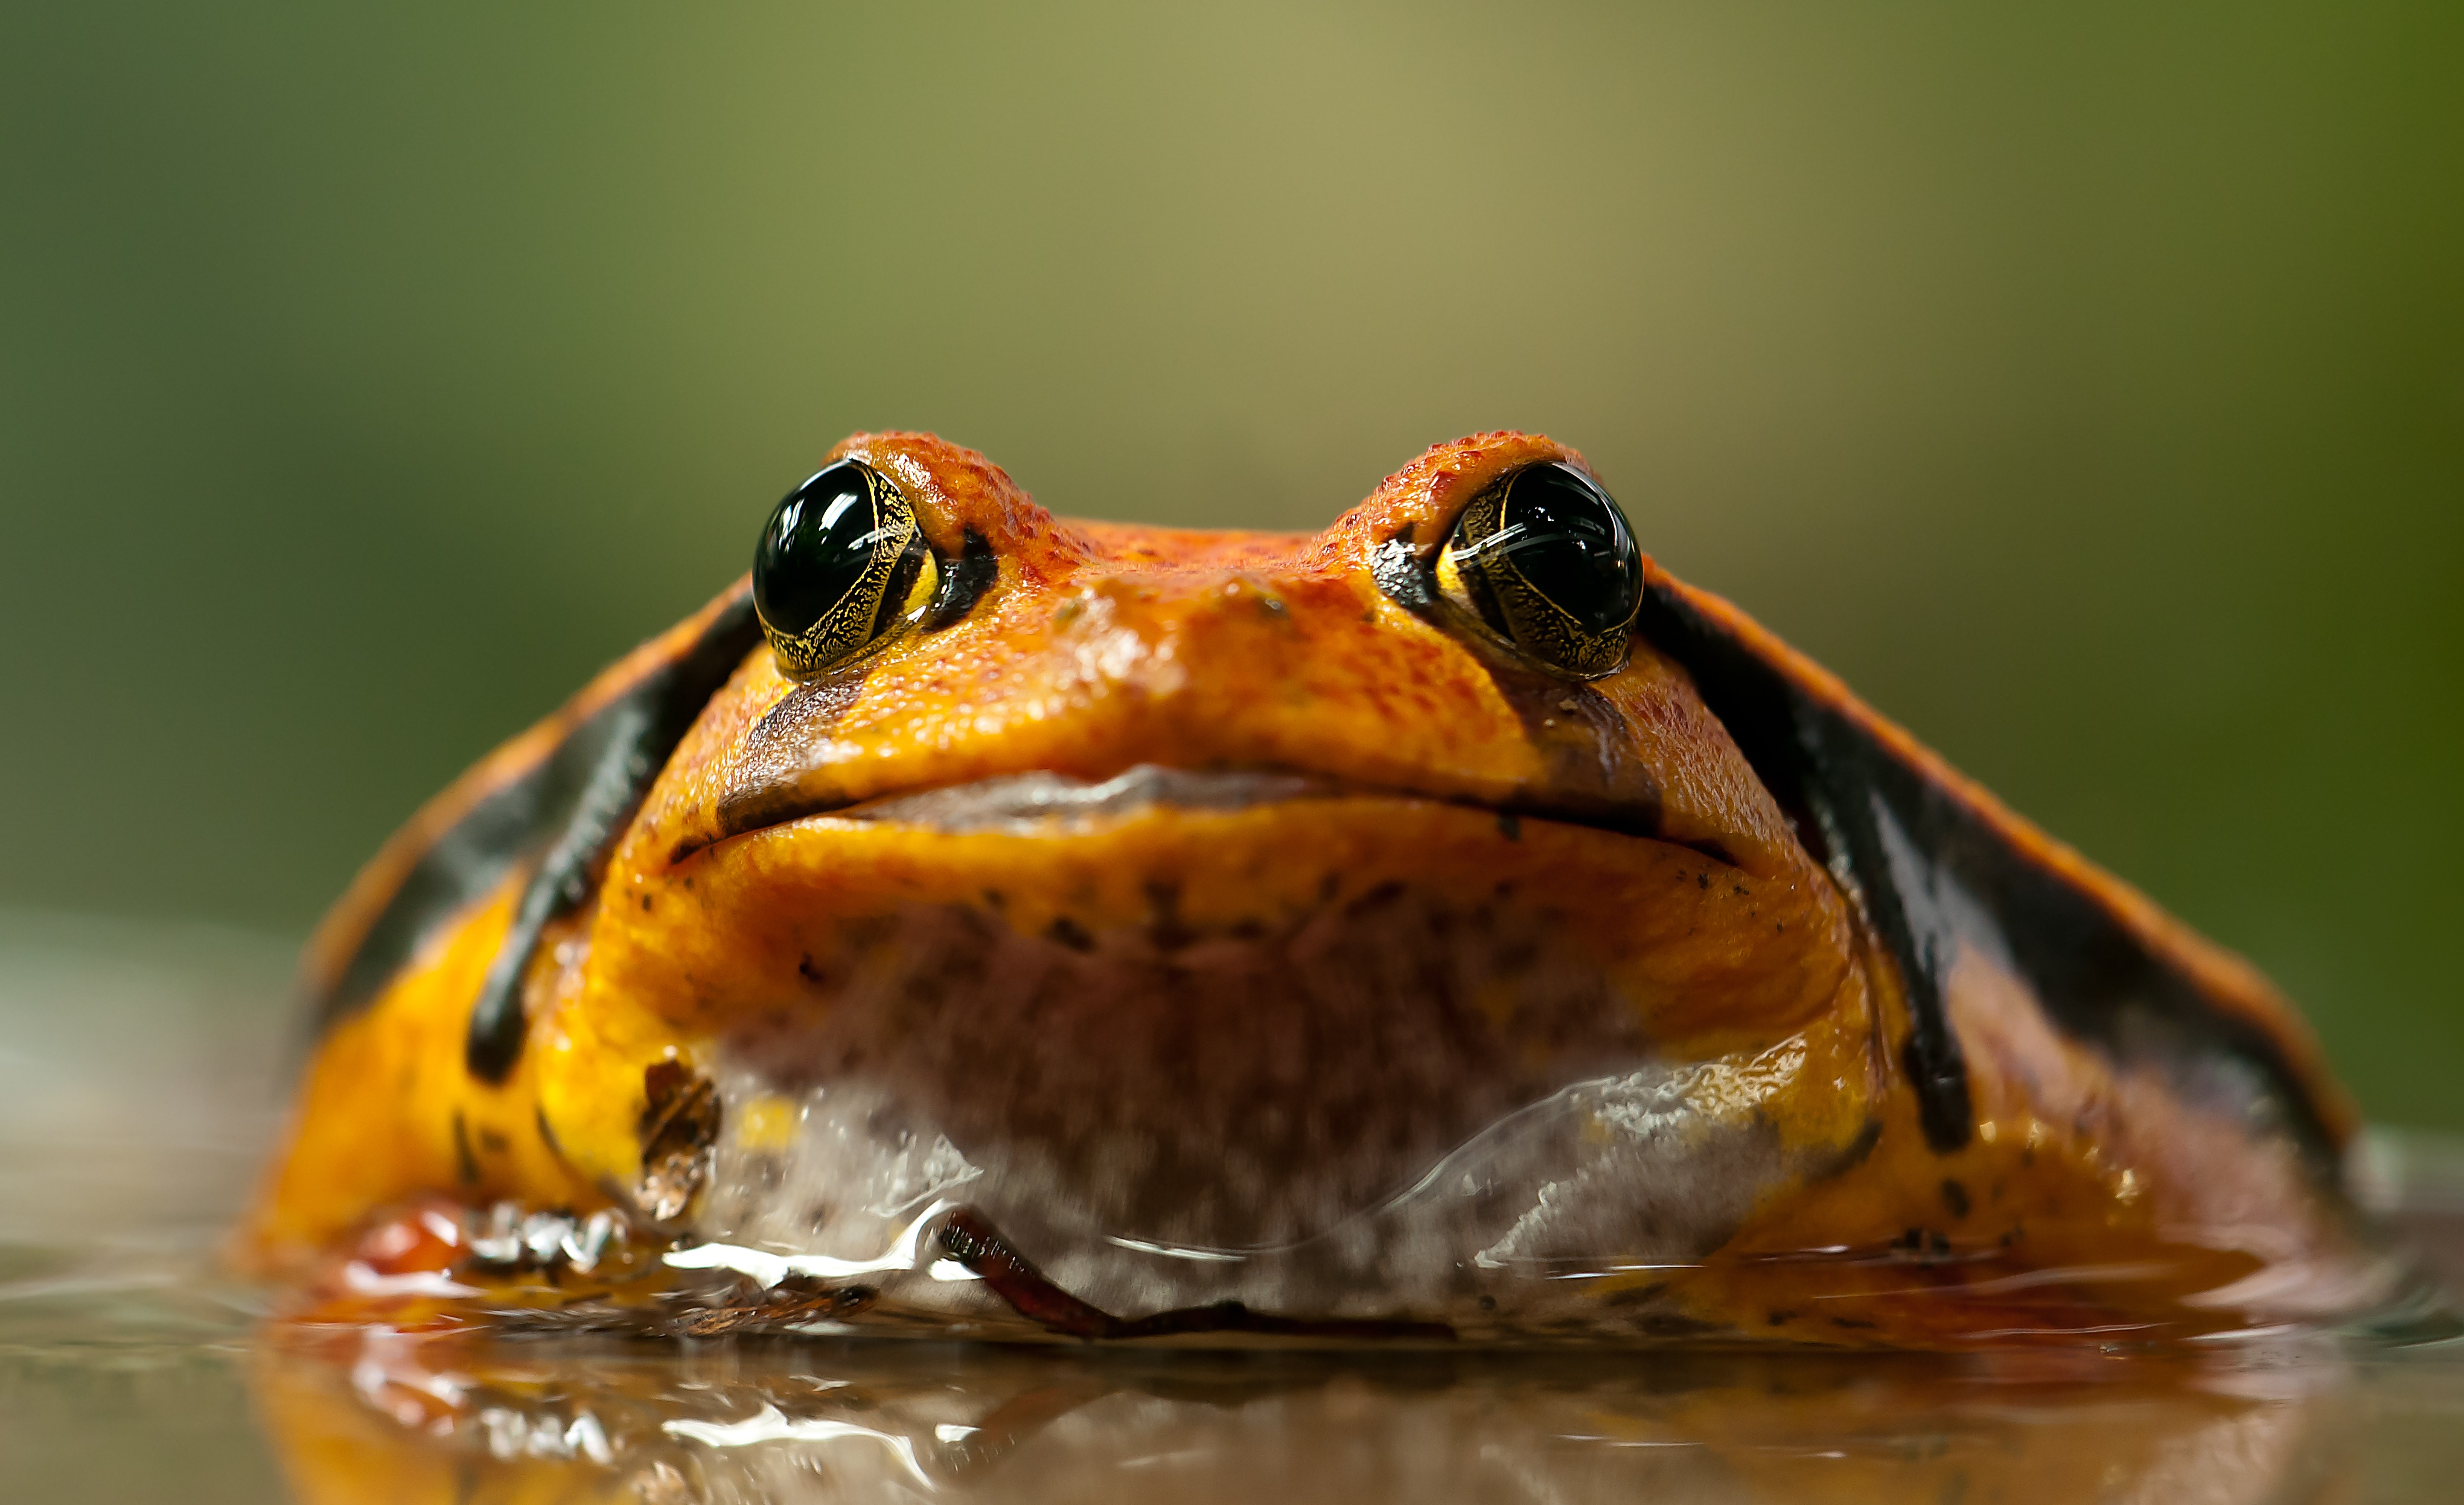 61151 download wallpaper Animals, Frog, Toad, Eyes screensavers and pictures for free